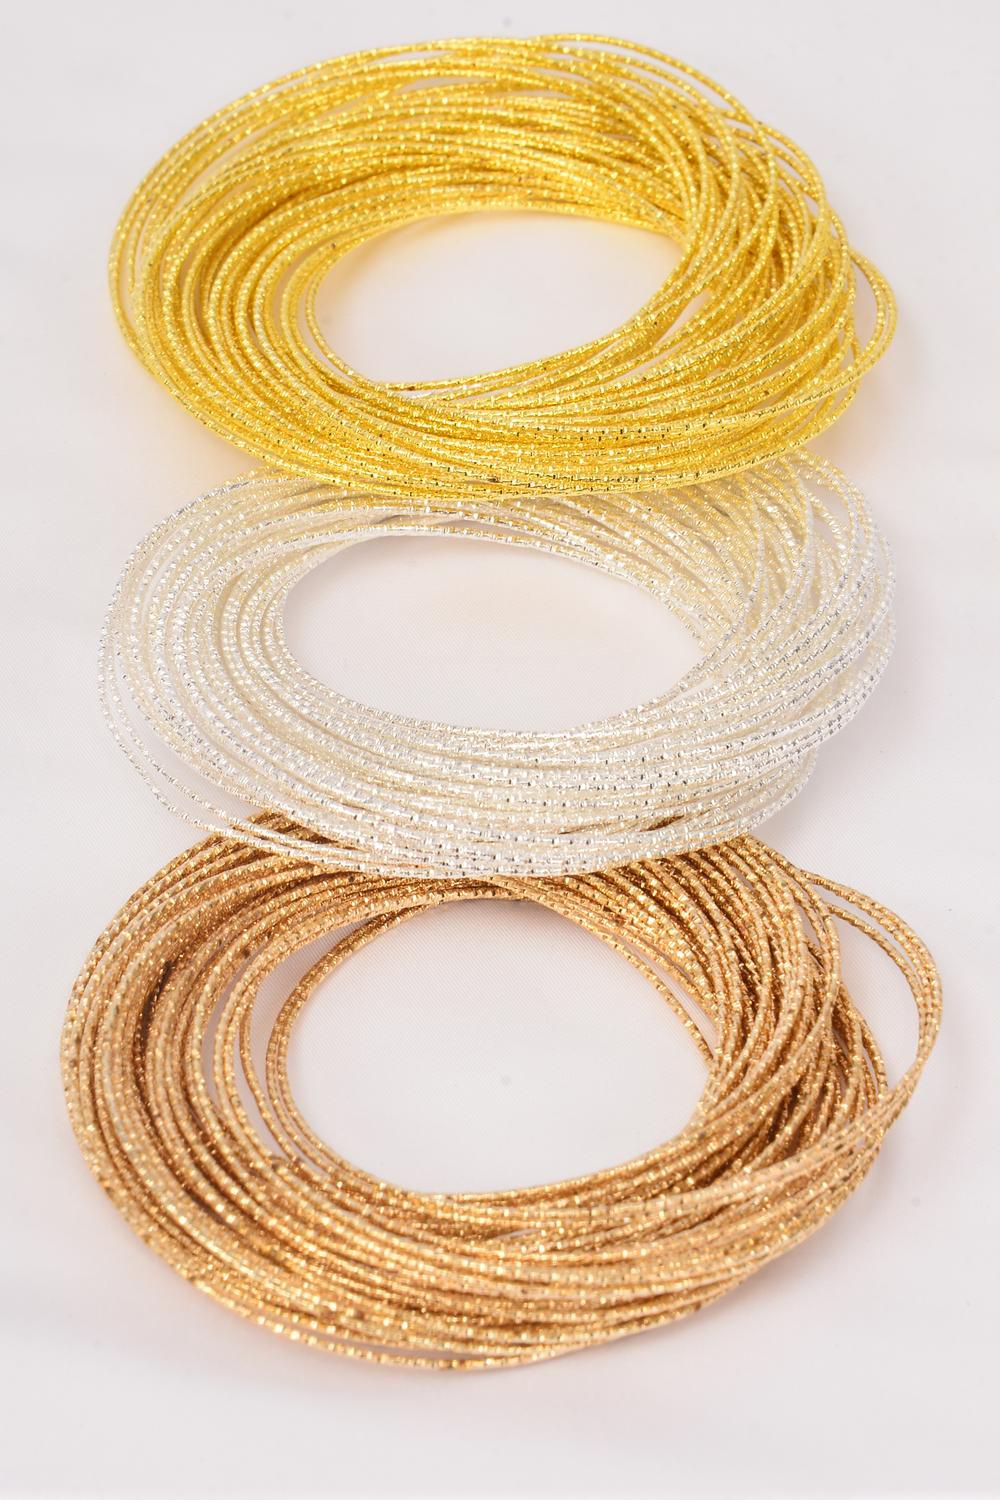 "Bangles 50 pcs Intertwined  Diamond Cut/PC Size-3"" Dia Wide, Hang Tag & OPP bag & UPC Code,Choose Colors -"